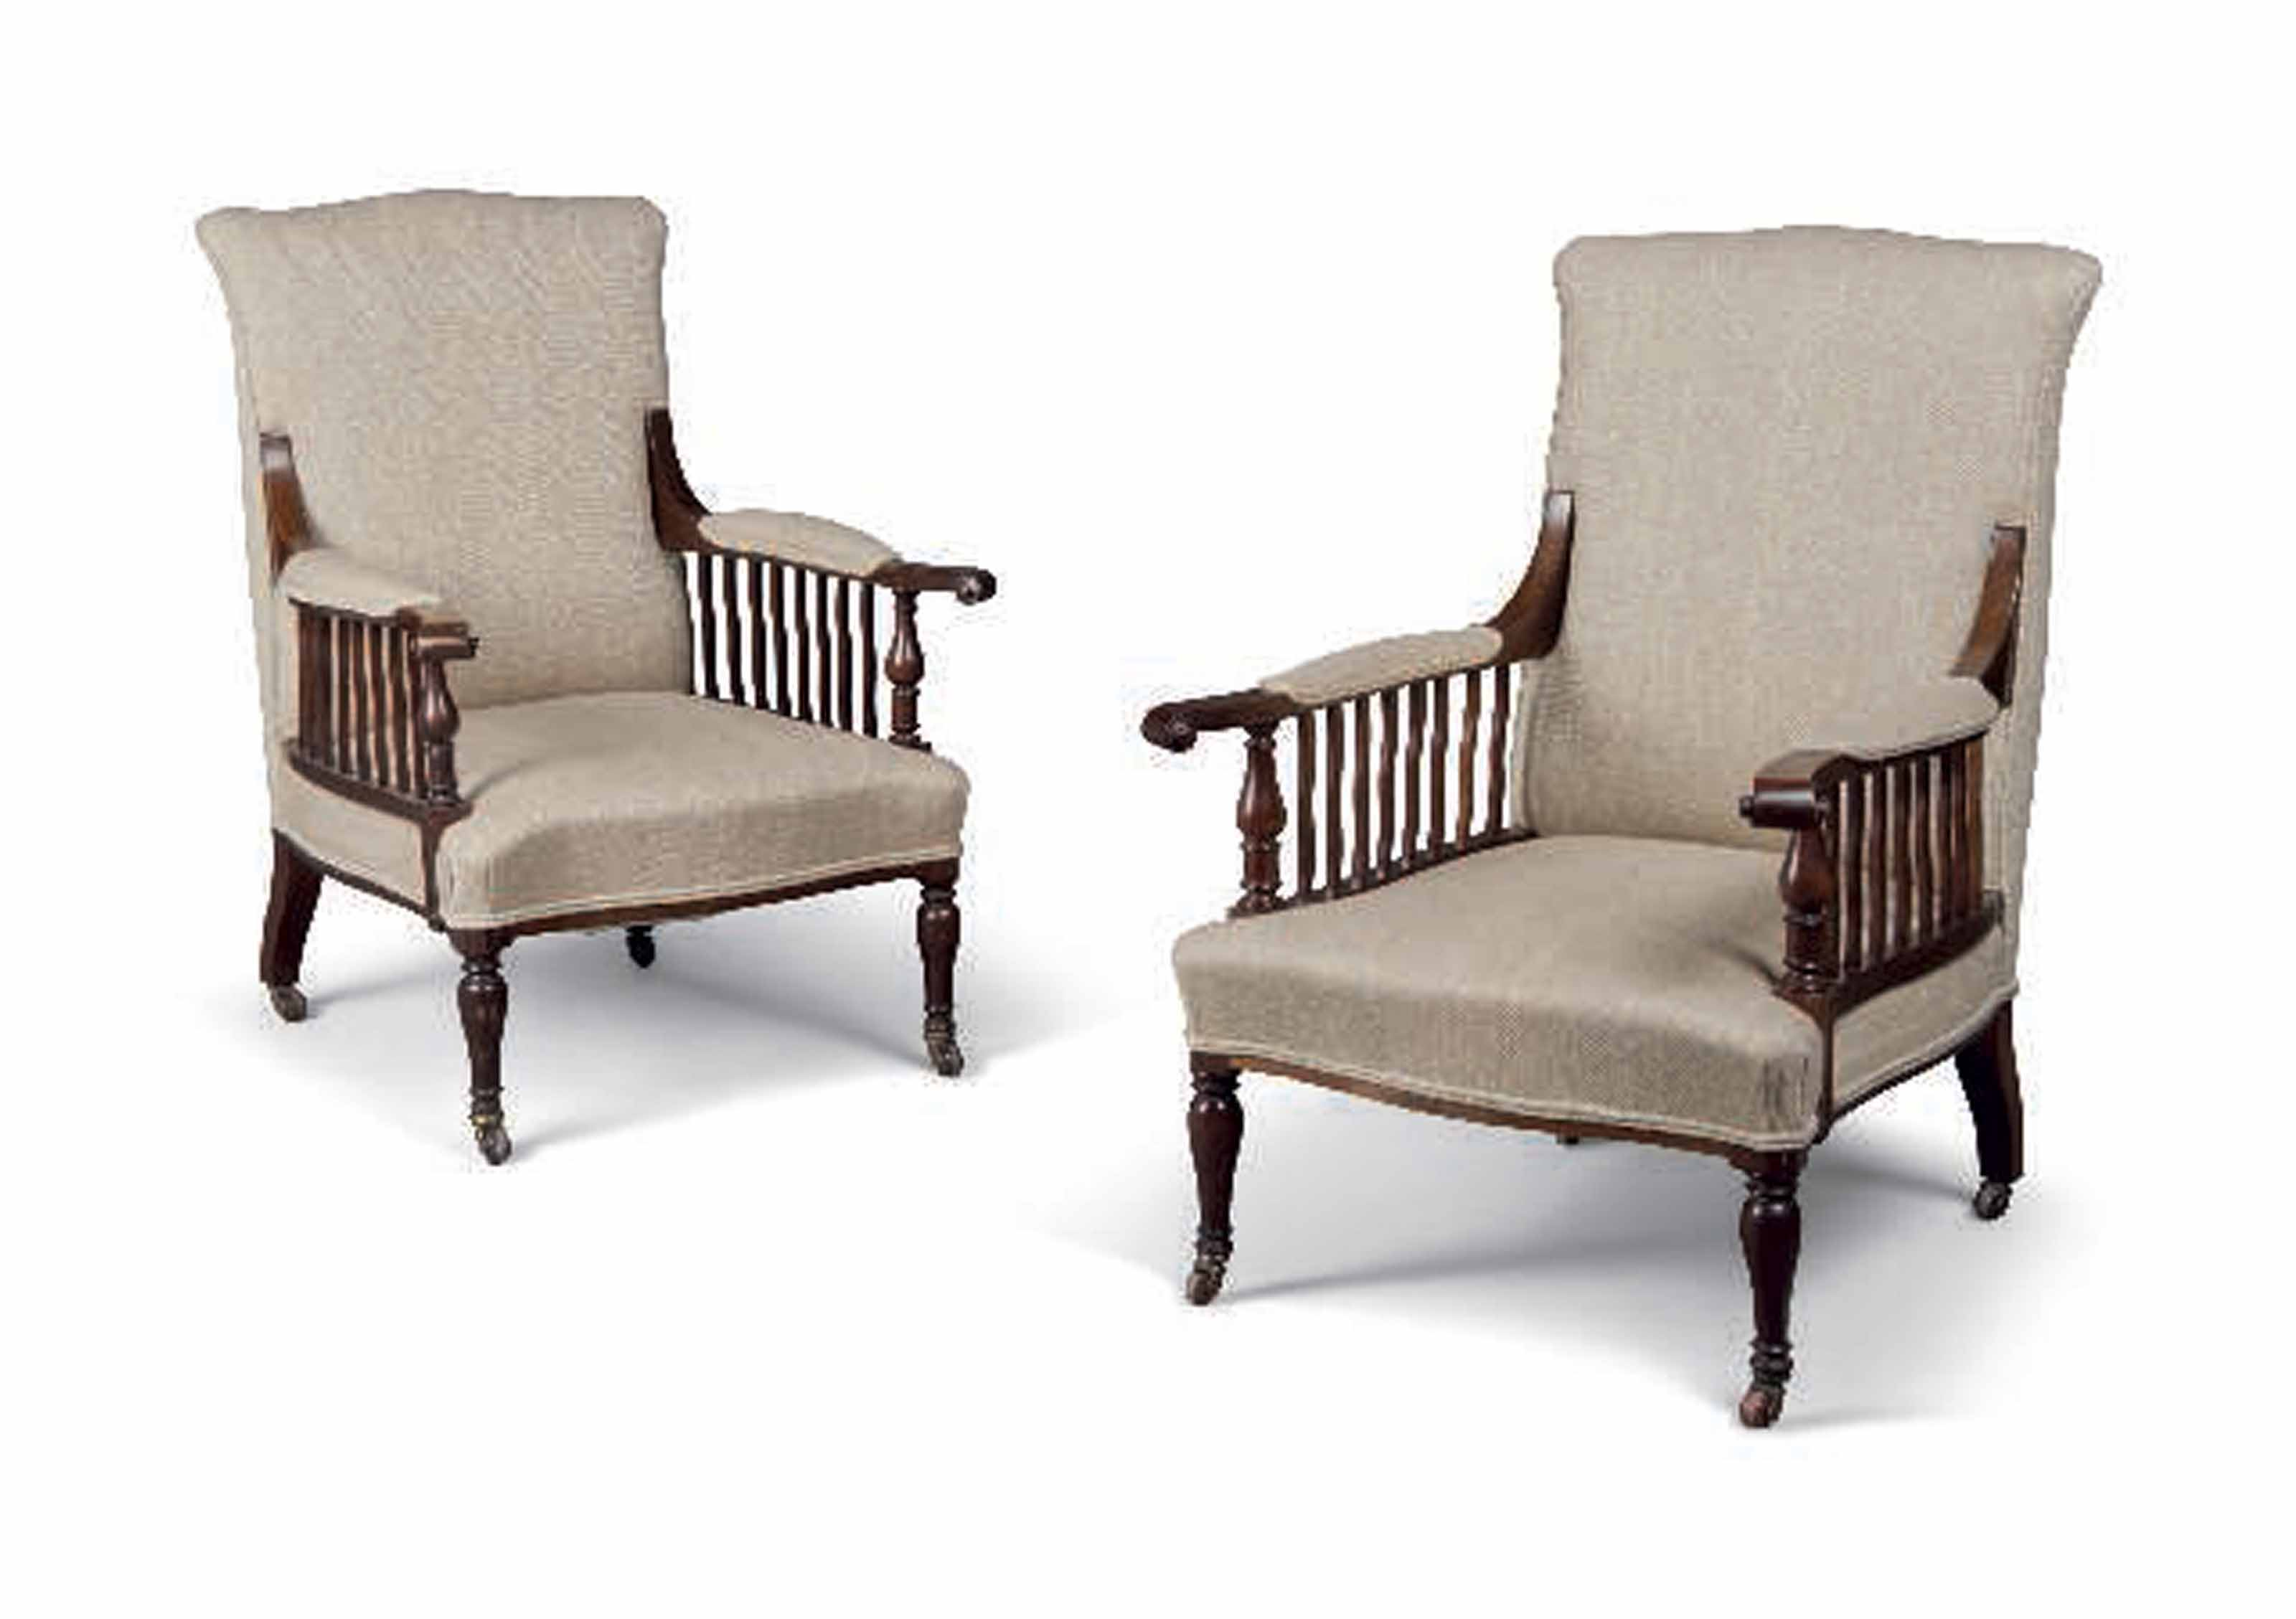 A PAIR OF MORRIS & CO MAHOGANY AND UPHOLSTERED 'SAVILLE' ARMCHAIRS ATTRIBUTED TO GEORGE JACK